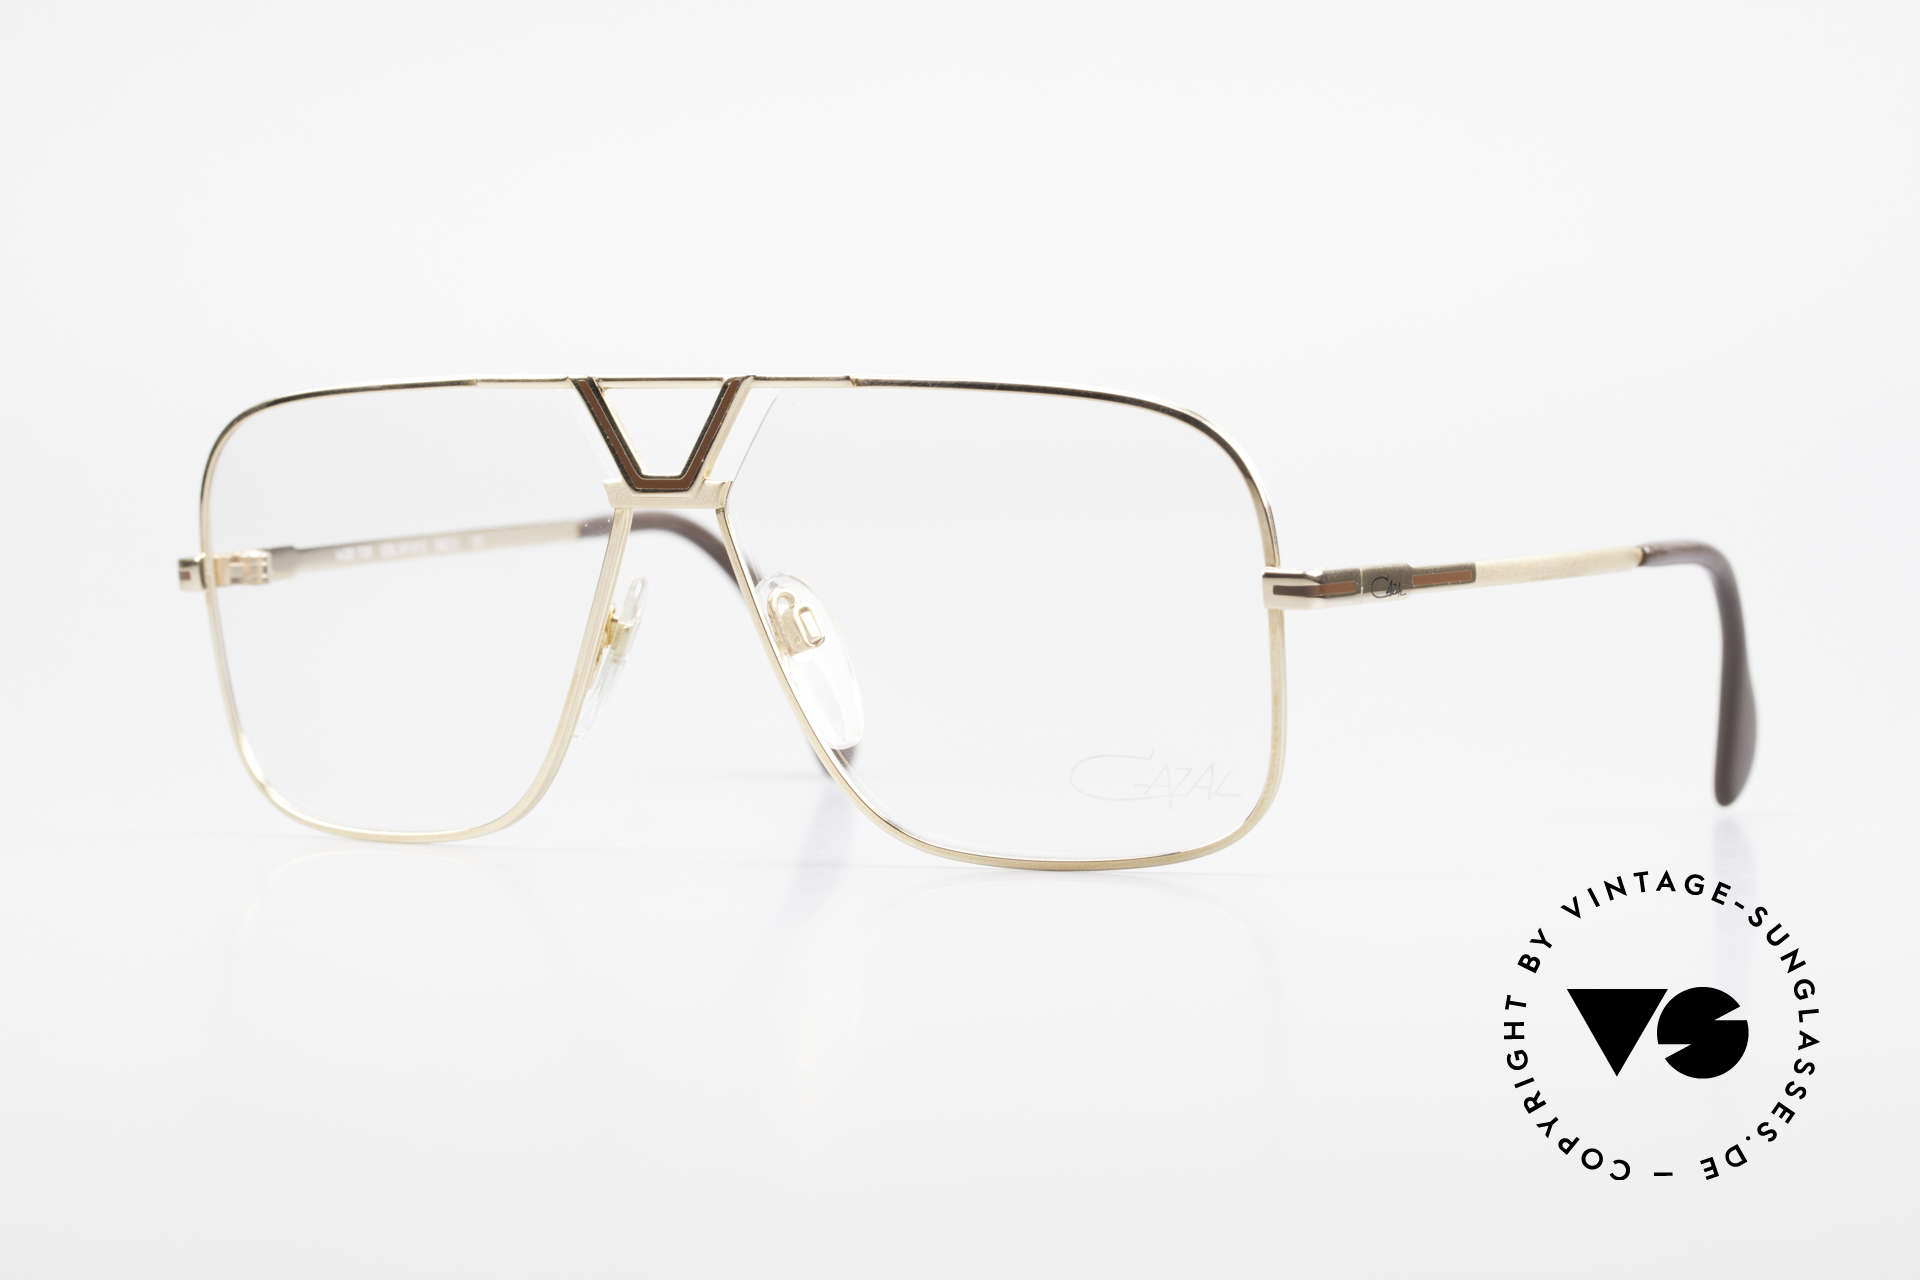 Cazal 725 Rare Vintage 1980's Eyeglasses, classic Cazal eyeglasses for men from 1983, Made for Men